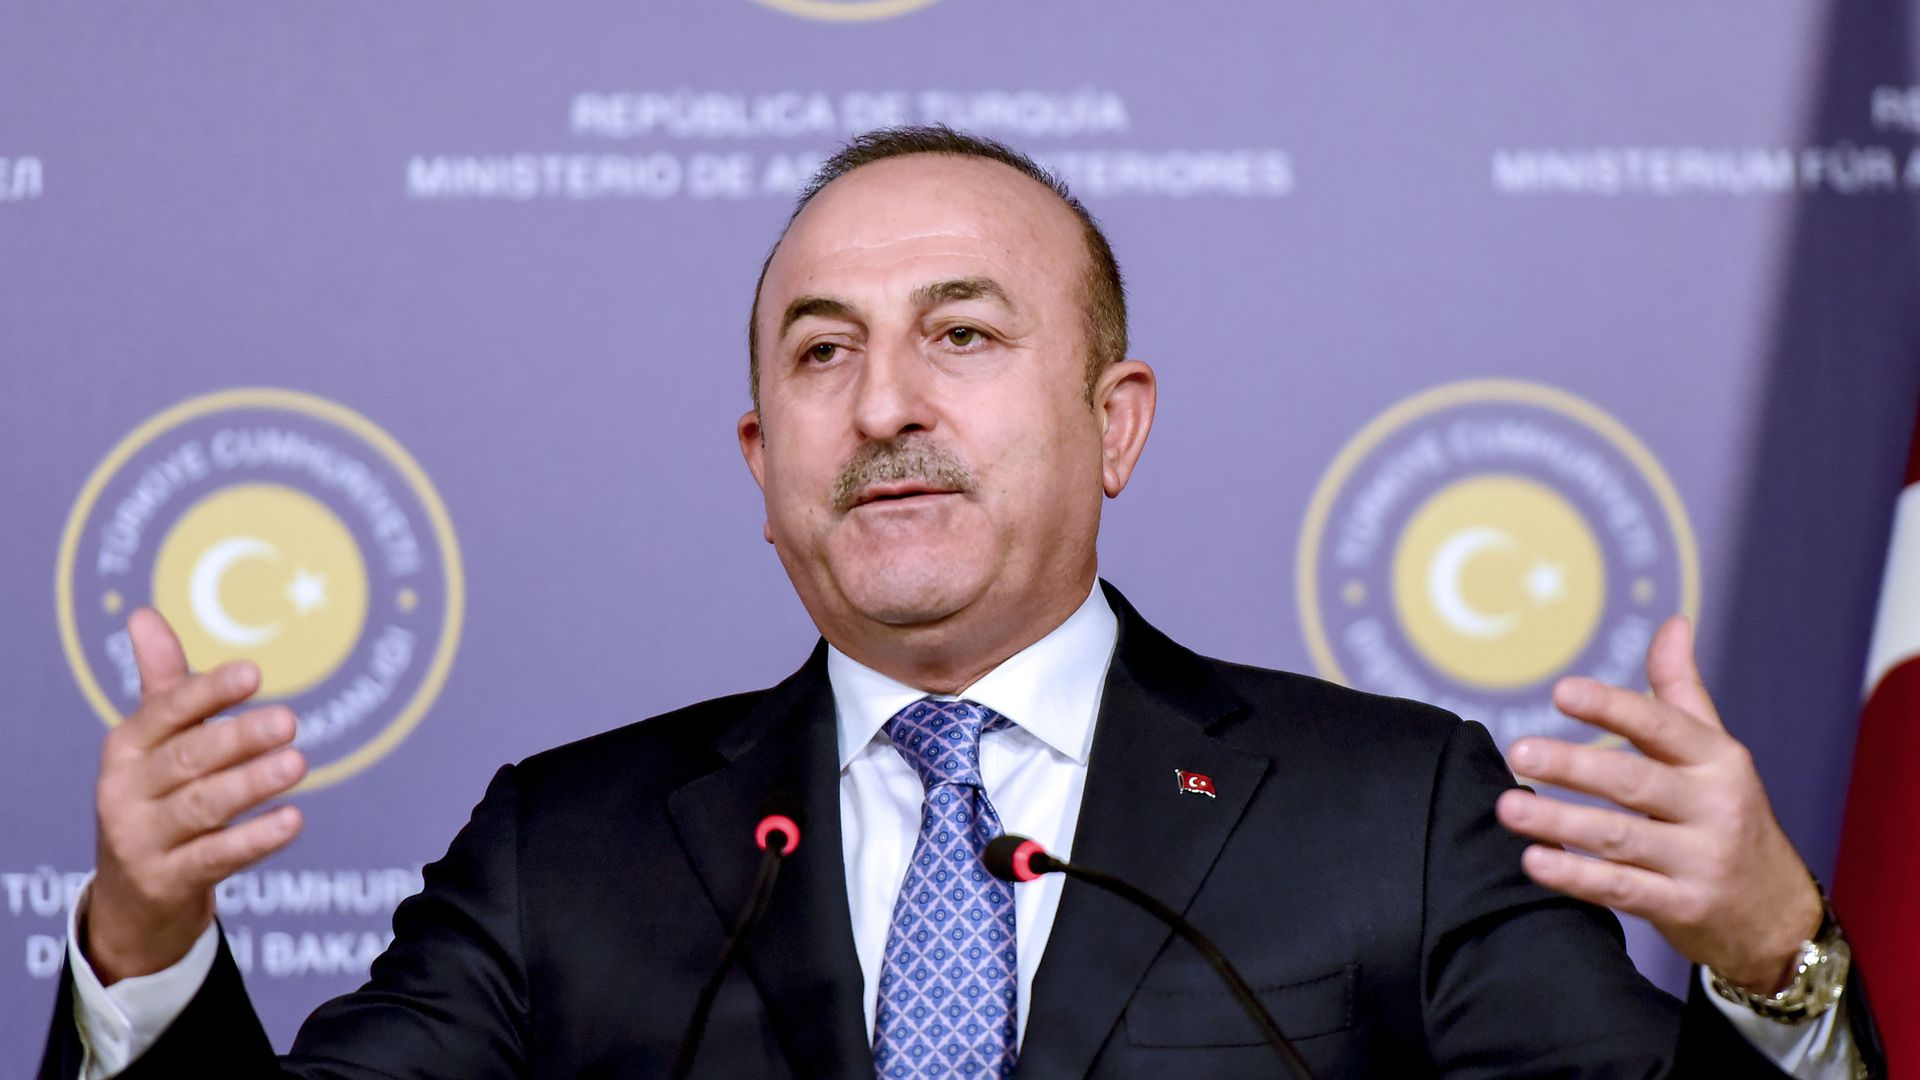 Turkish foreign minister Cavusoglu at a press conference